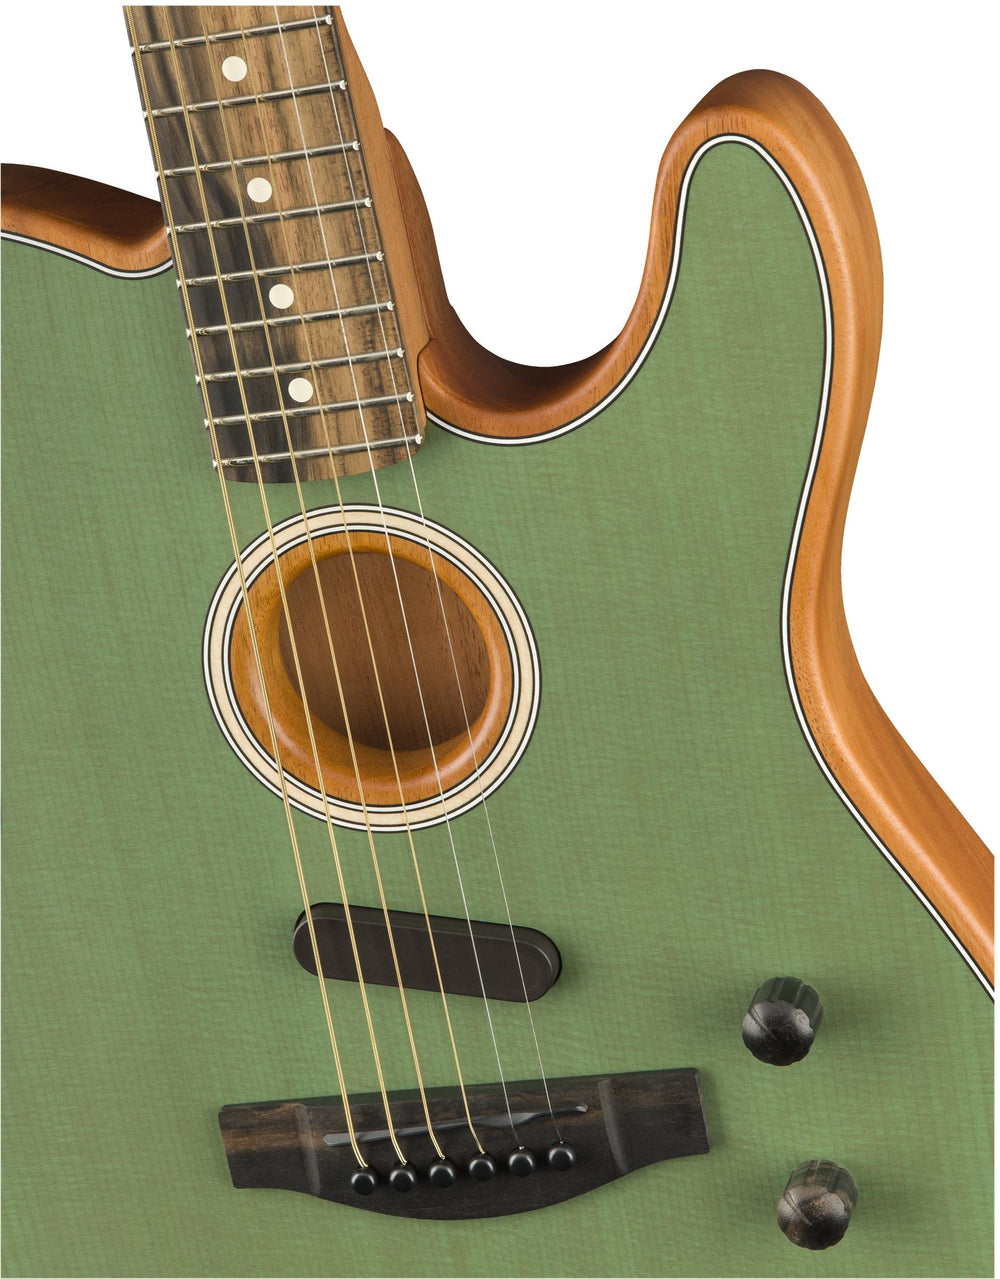 Fender American Acoustasonic Telecaster, Ebony Fingerboard, Surf Green, Fender, Haworth Music